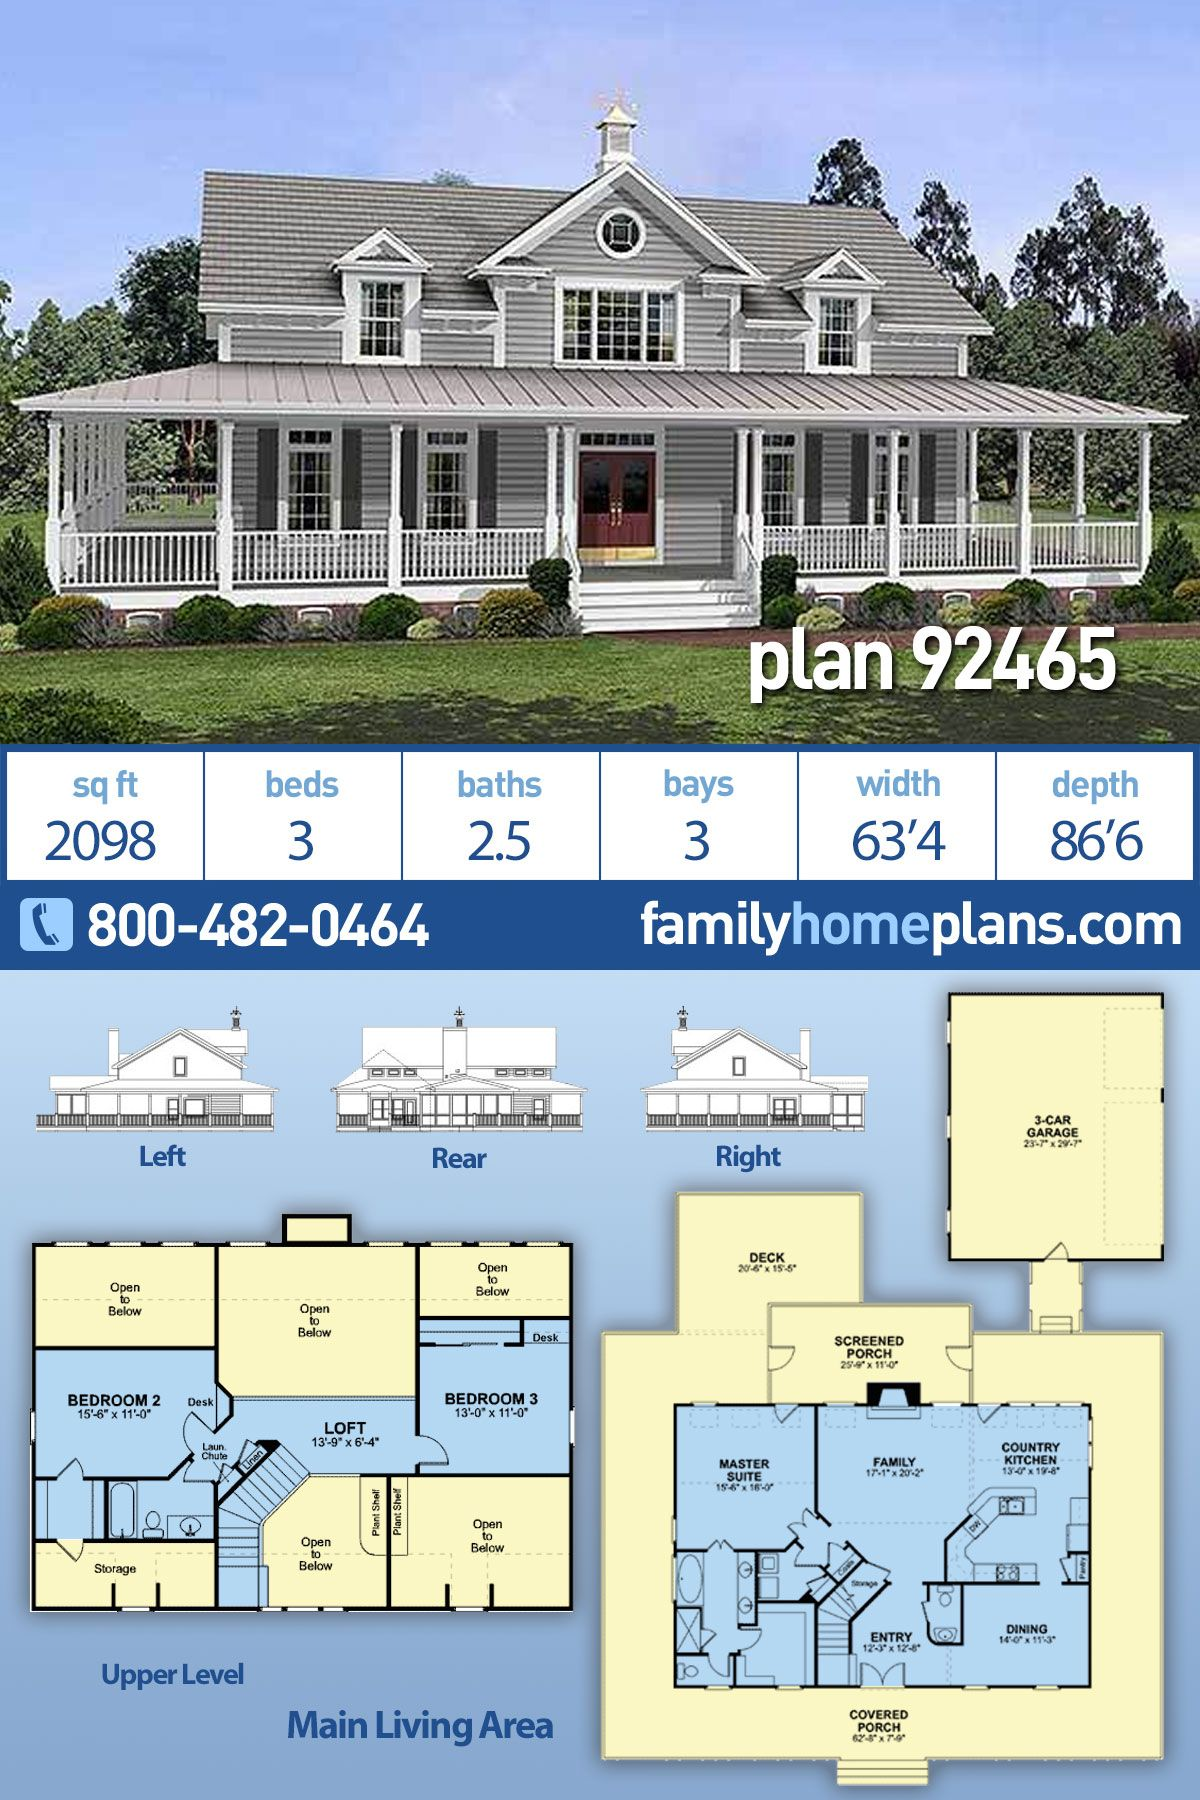 Southern Style House Plan 92465 With 3 Bed 3 Bath 3 Car Garage Porch House Plans Country House Plans House Plans